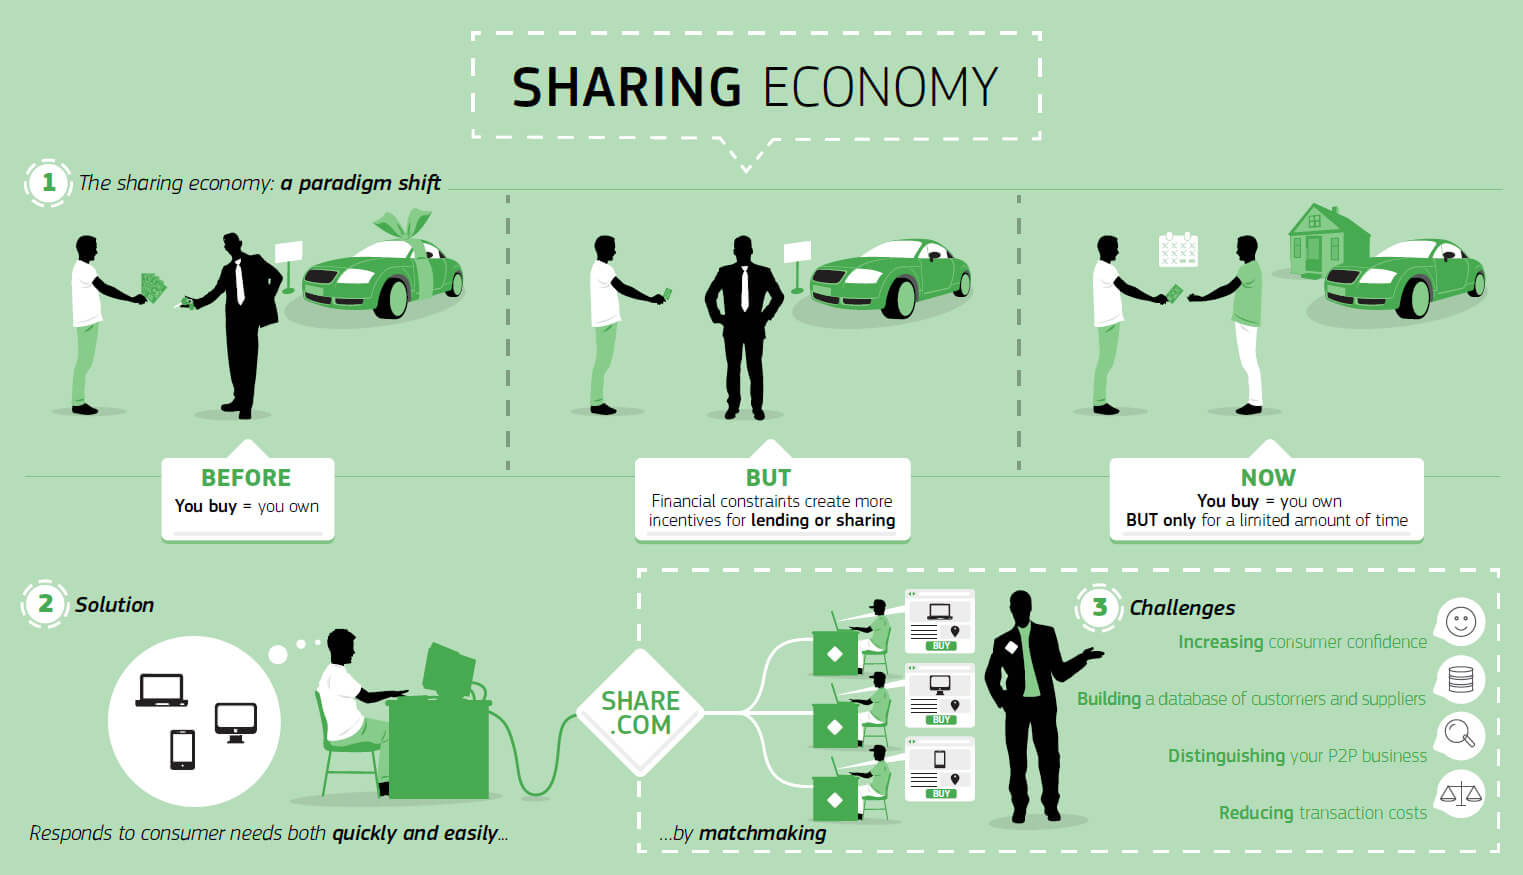 What A Wonderful New World: The Sharing Economy